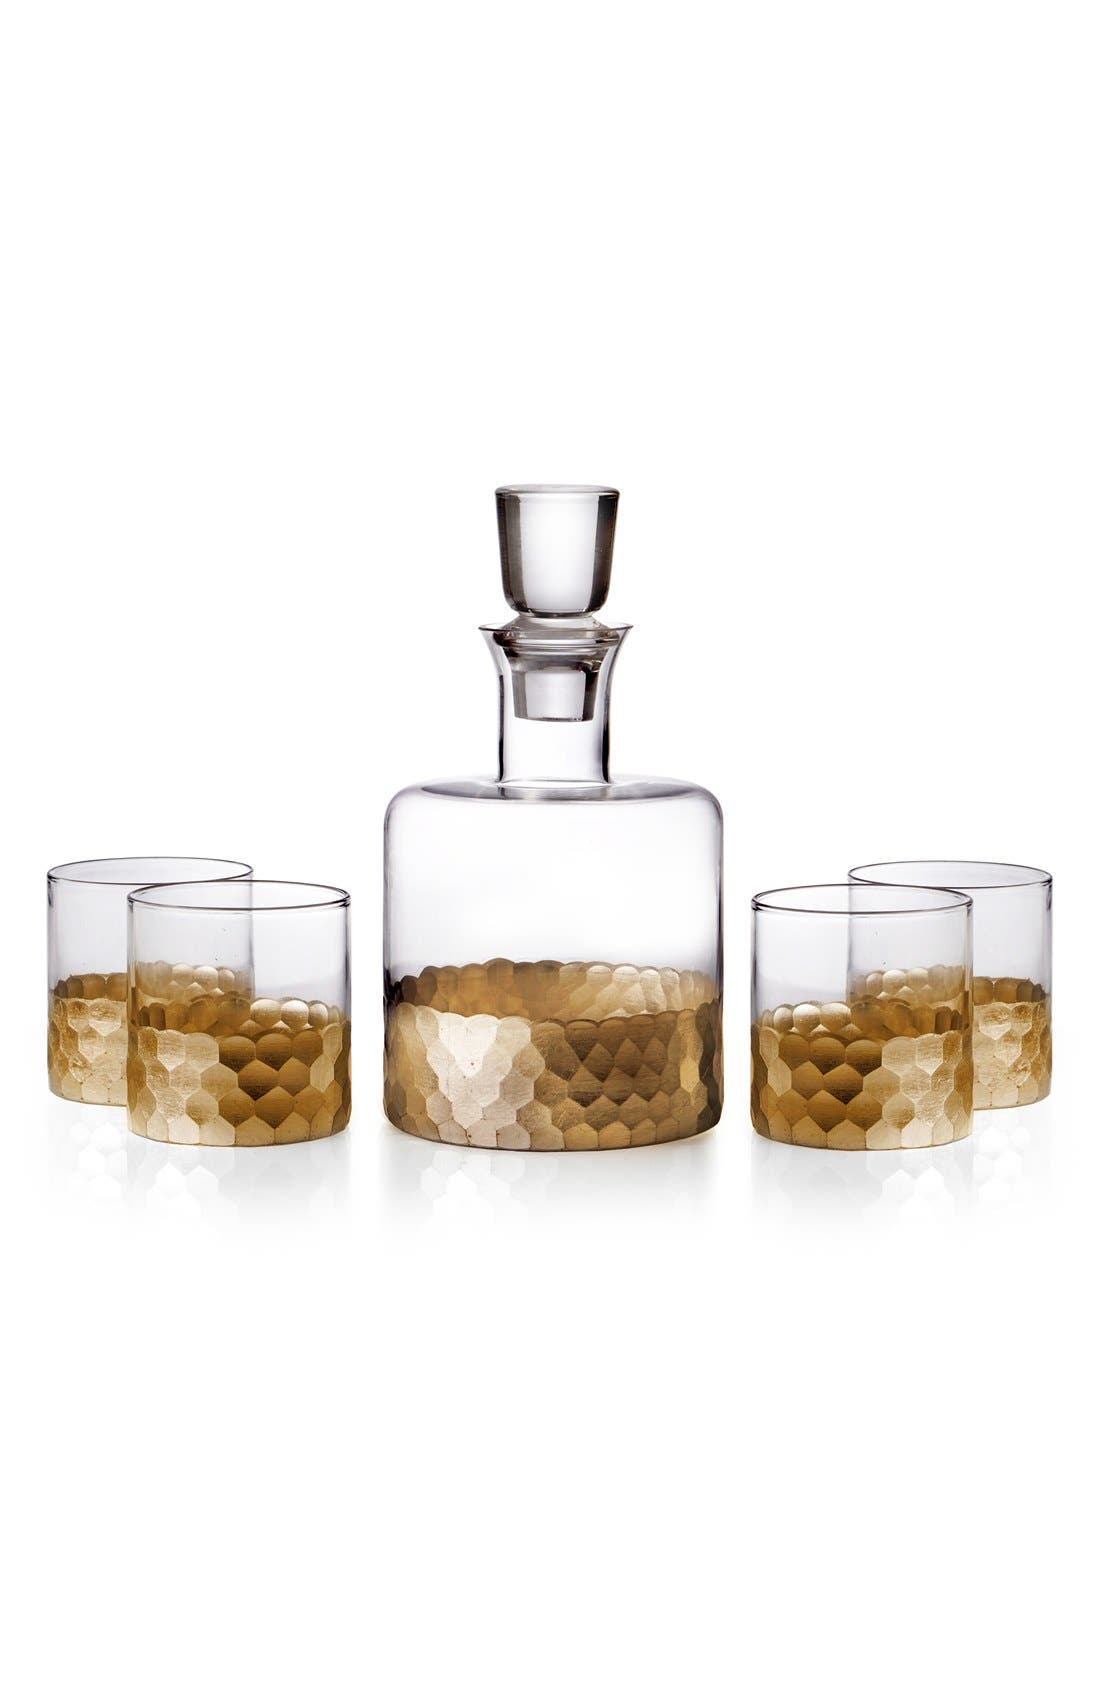 Alternate Image 1 Selected - American Atelier 'Daphne' Decanter & Whiskey Glasses (Set of 5)